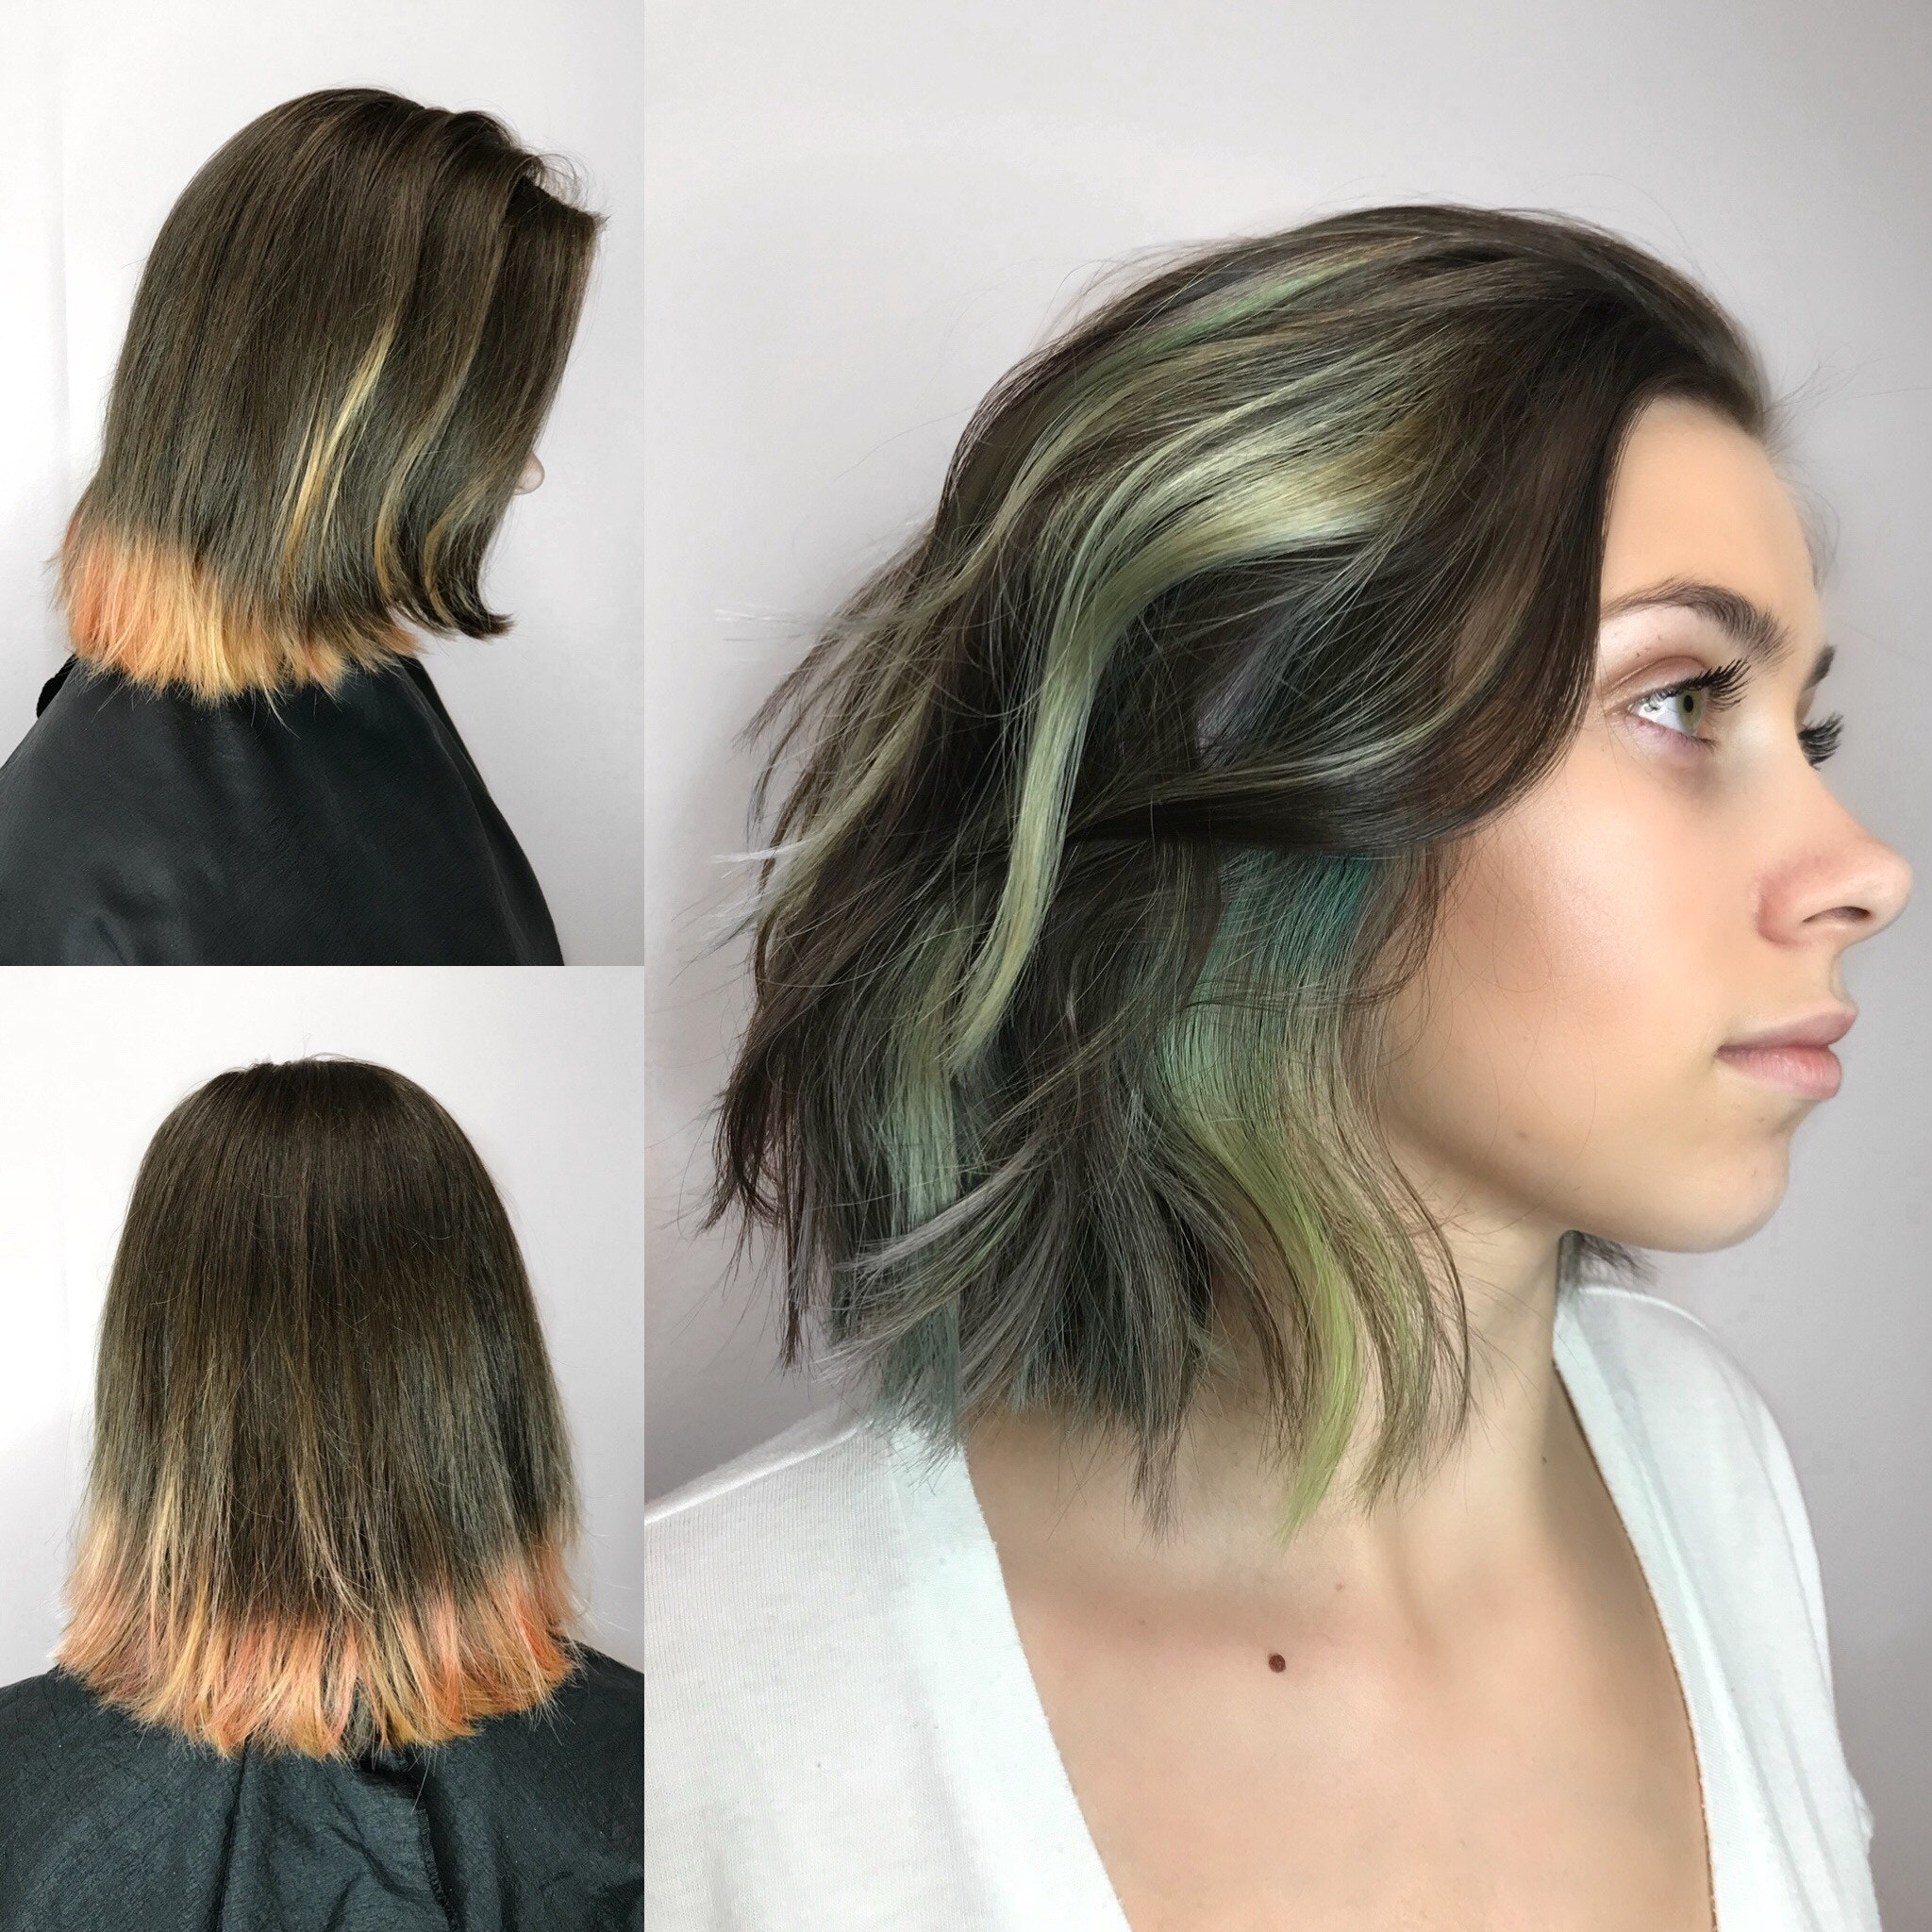 B E F O R E A F T E Rfrom Box Color And Trim Done By Her Mom To